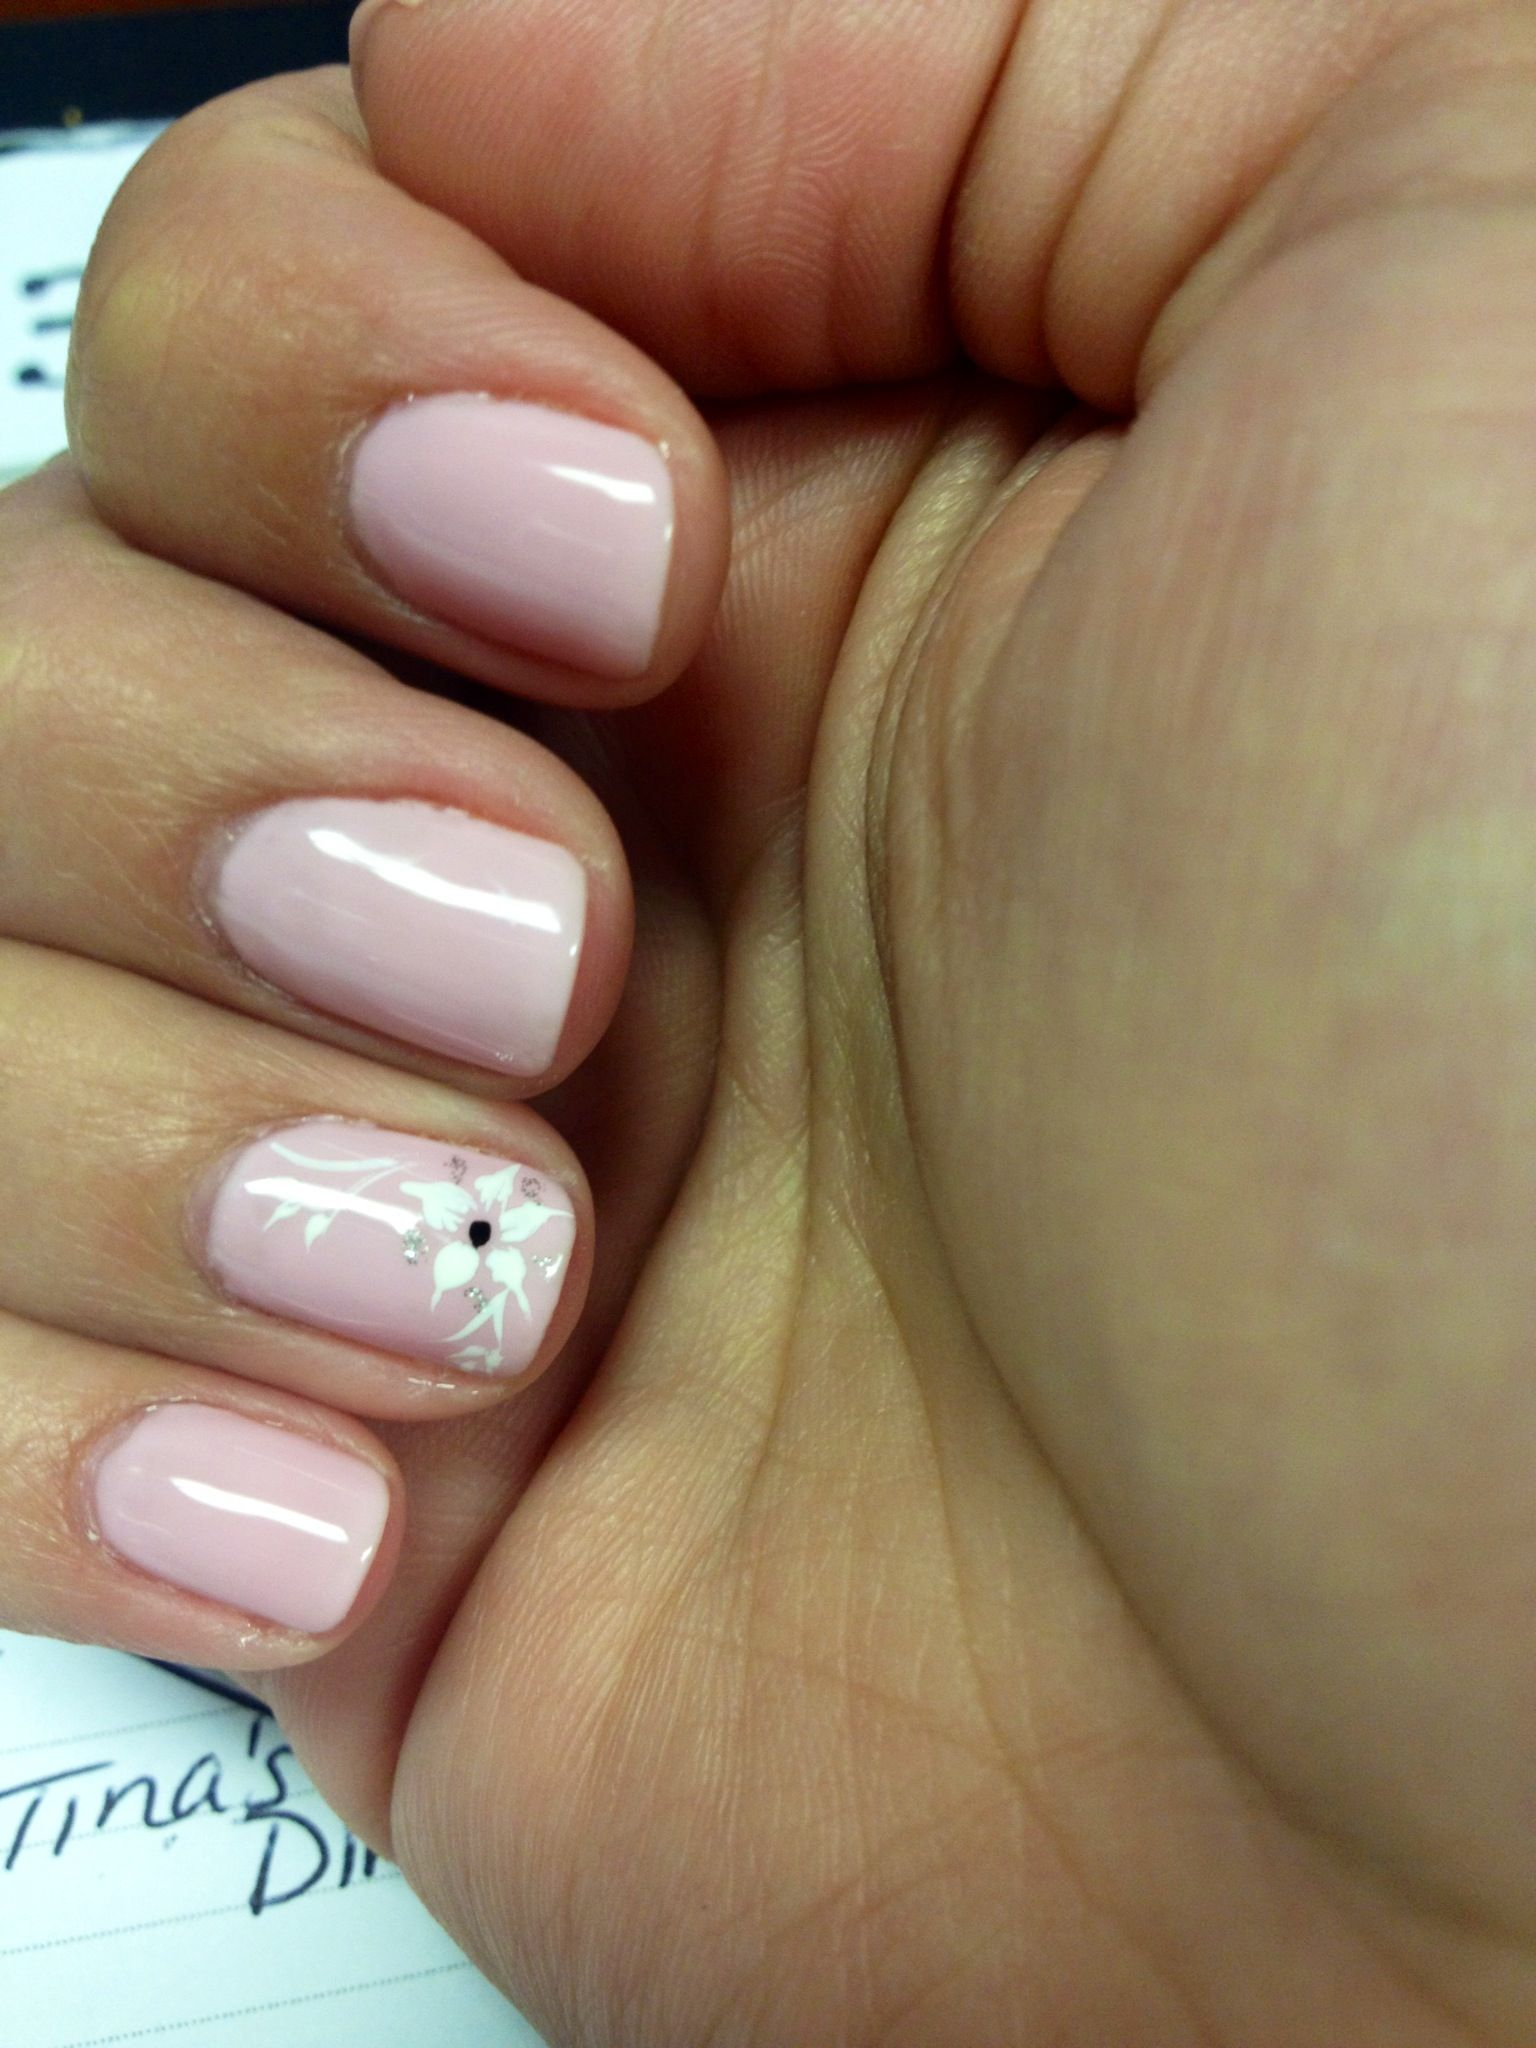 Nice & Simple Pink Shellac Nails